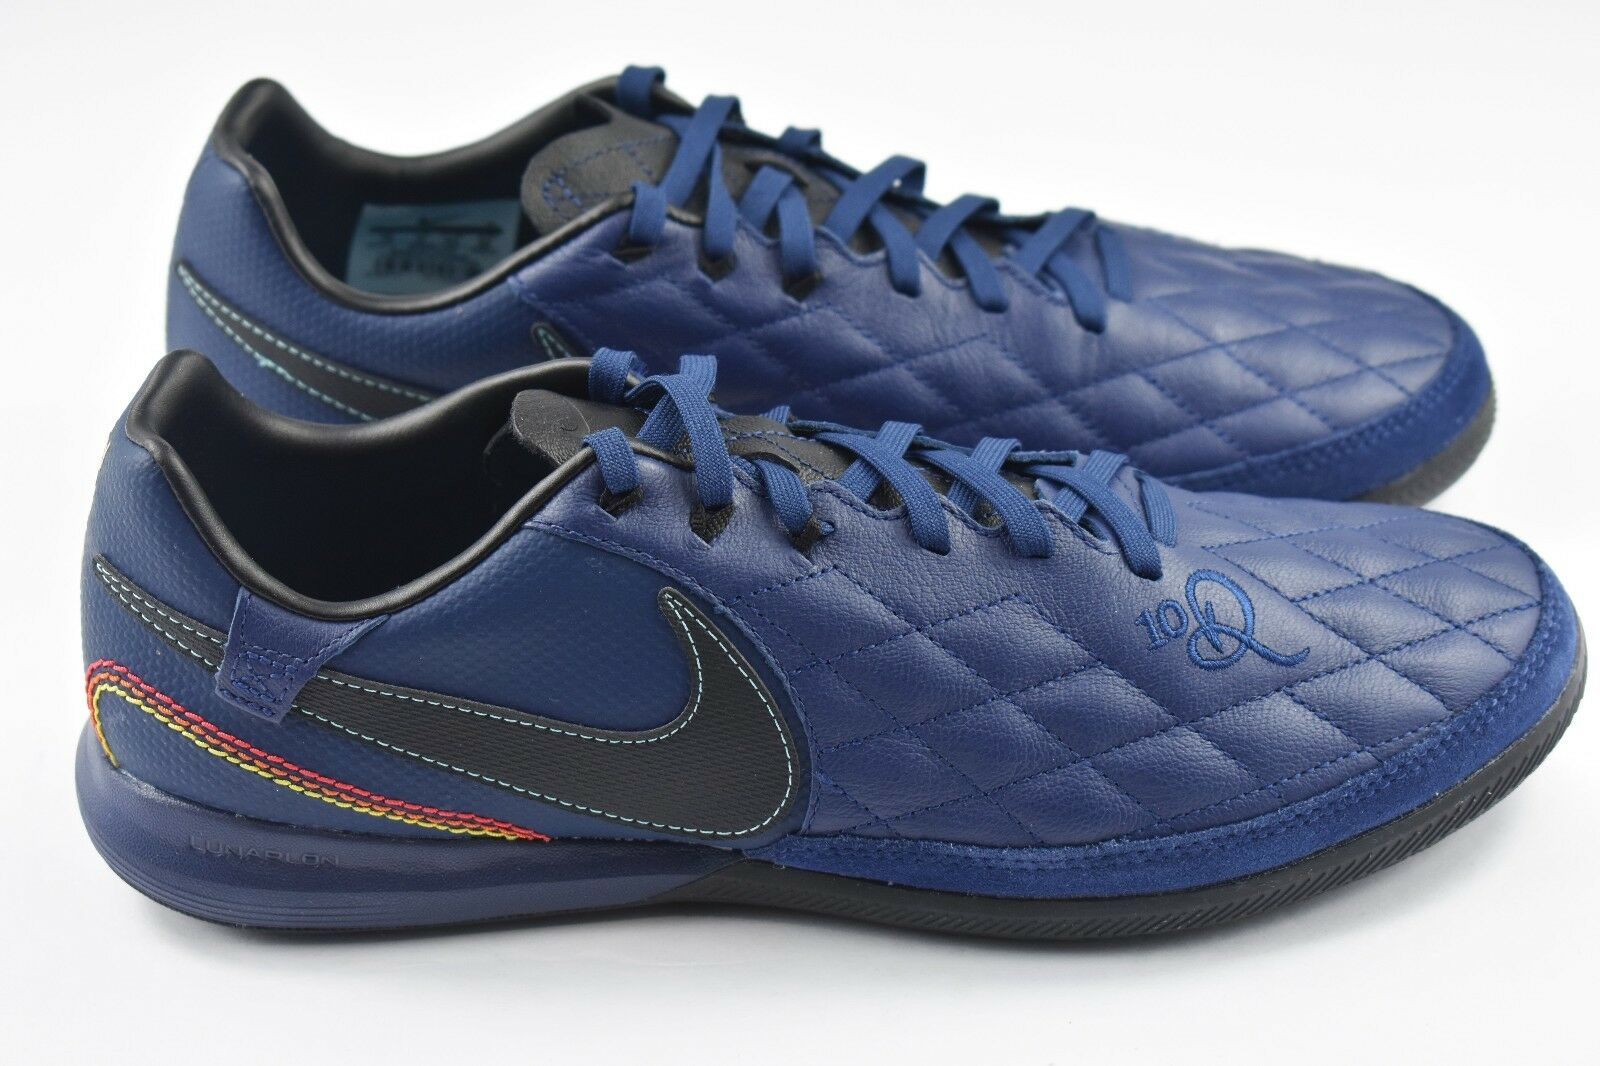 Nike TiempoX Finale 10R TF Mens Size 6.5 Soccer shoes AQ3822 440 Ronaldinho